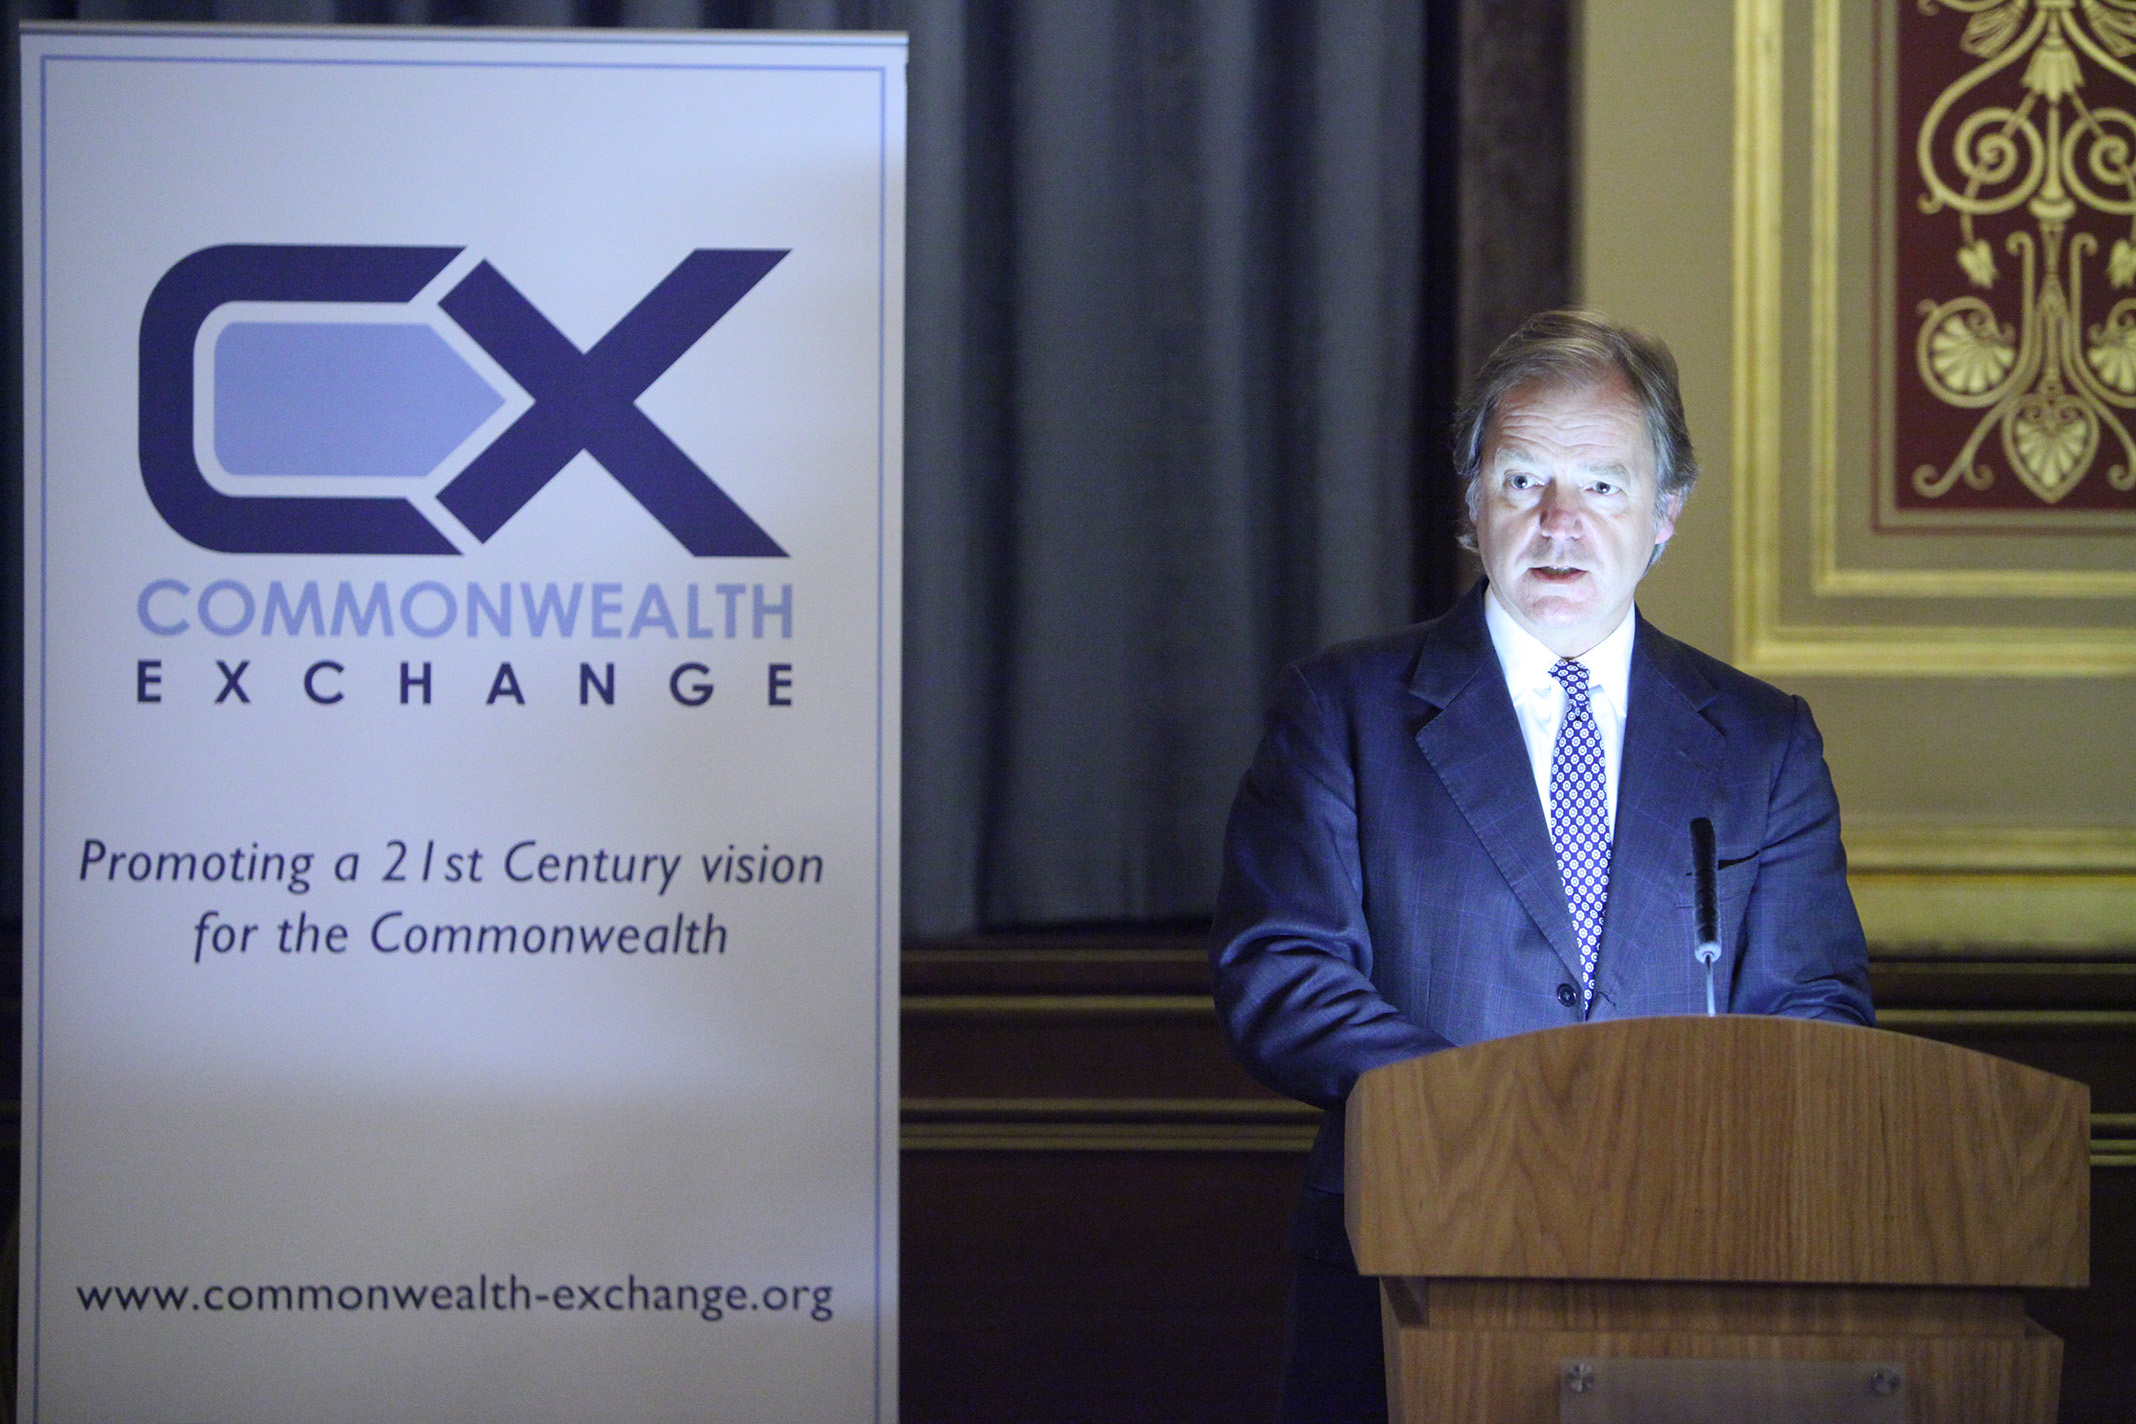 CX keynote address - Commonwealth Minister, Hugo Swire MP - Oct 2014